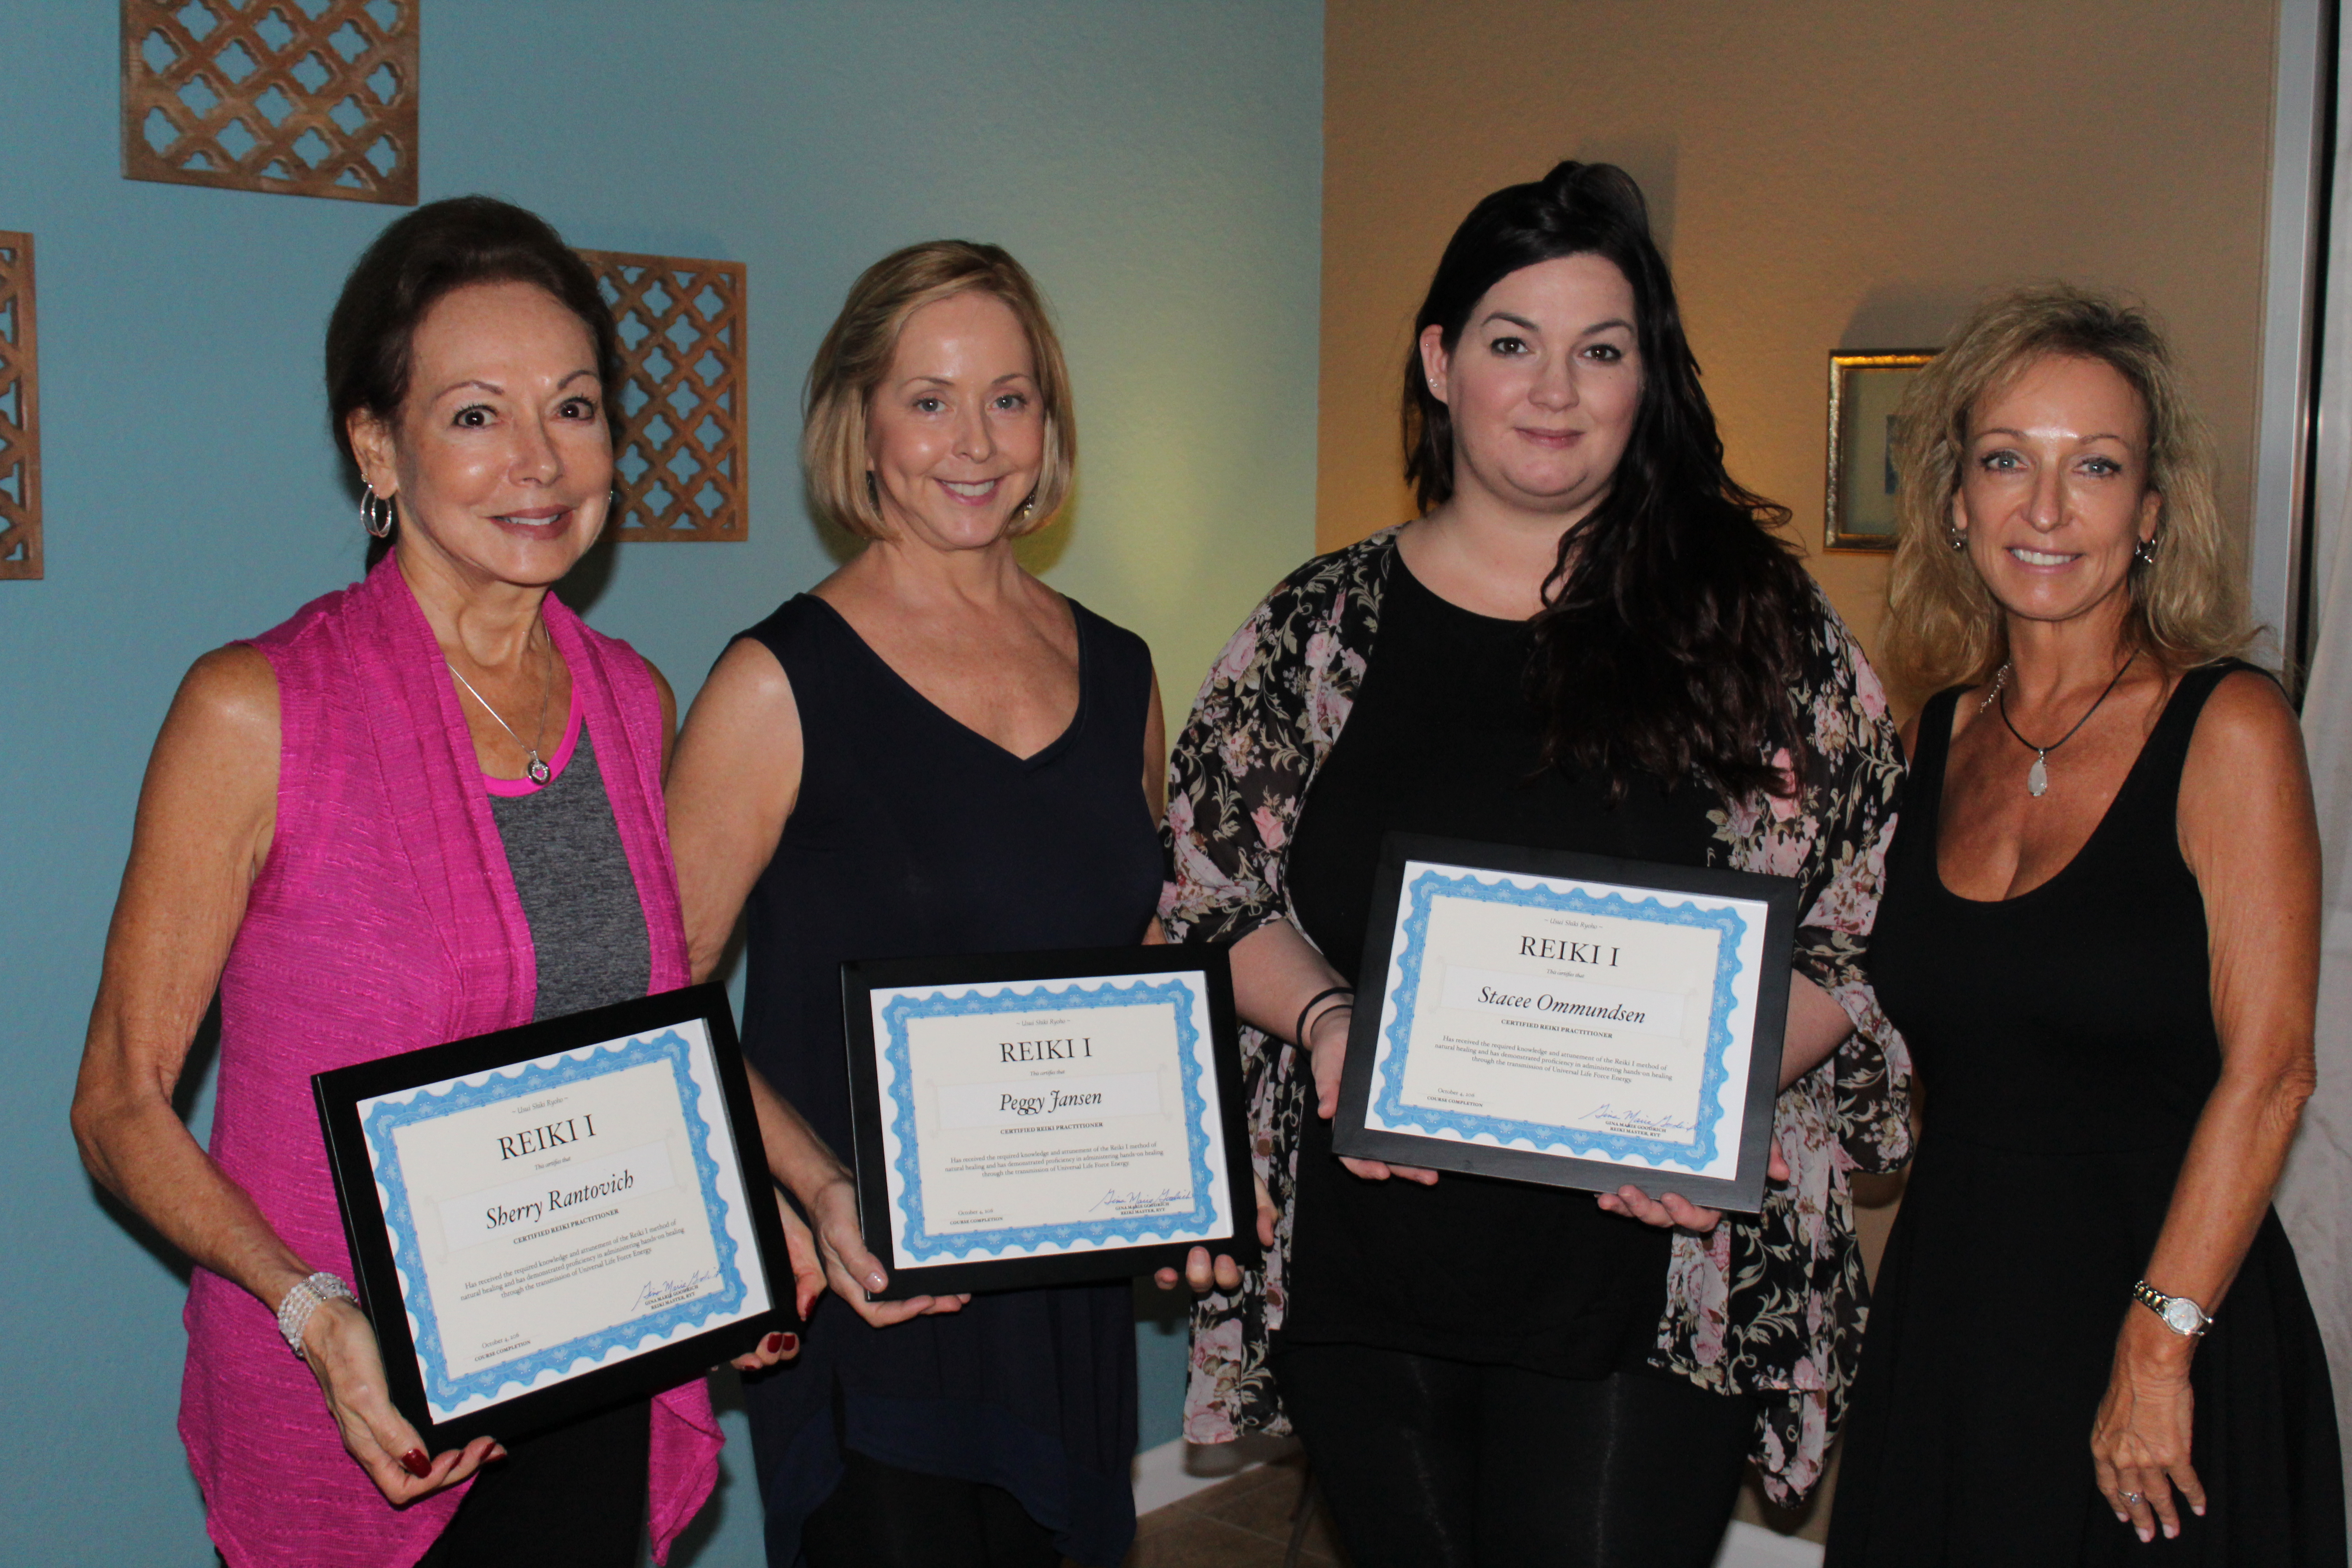 Our third class of certified Reiki practitioners, ready to heal themselves and others!